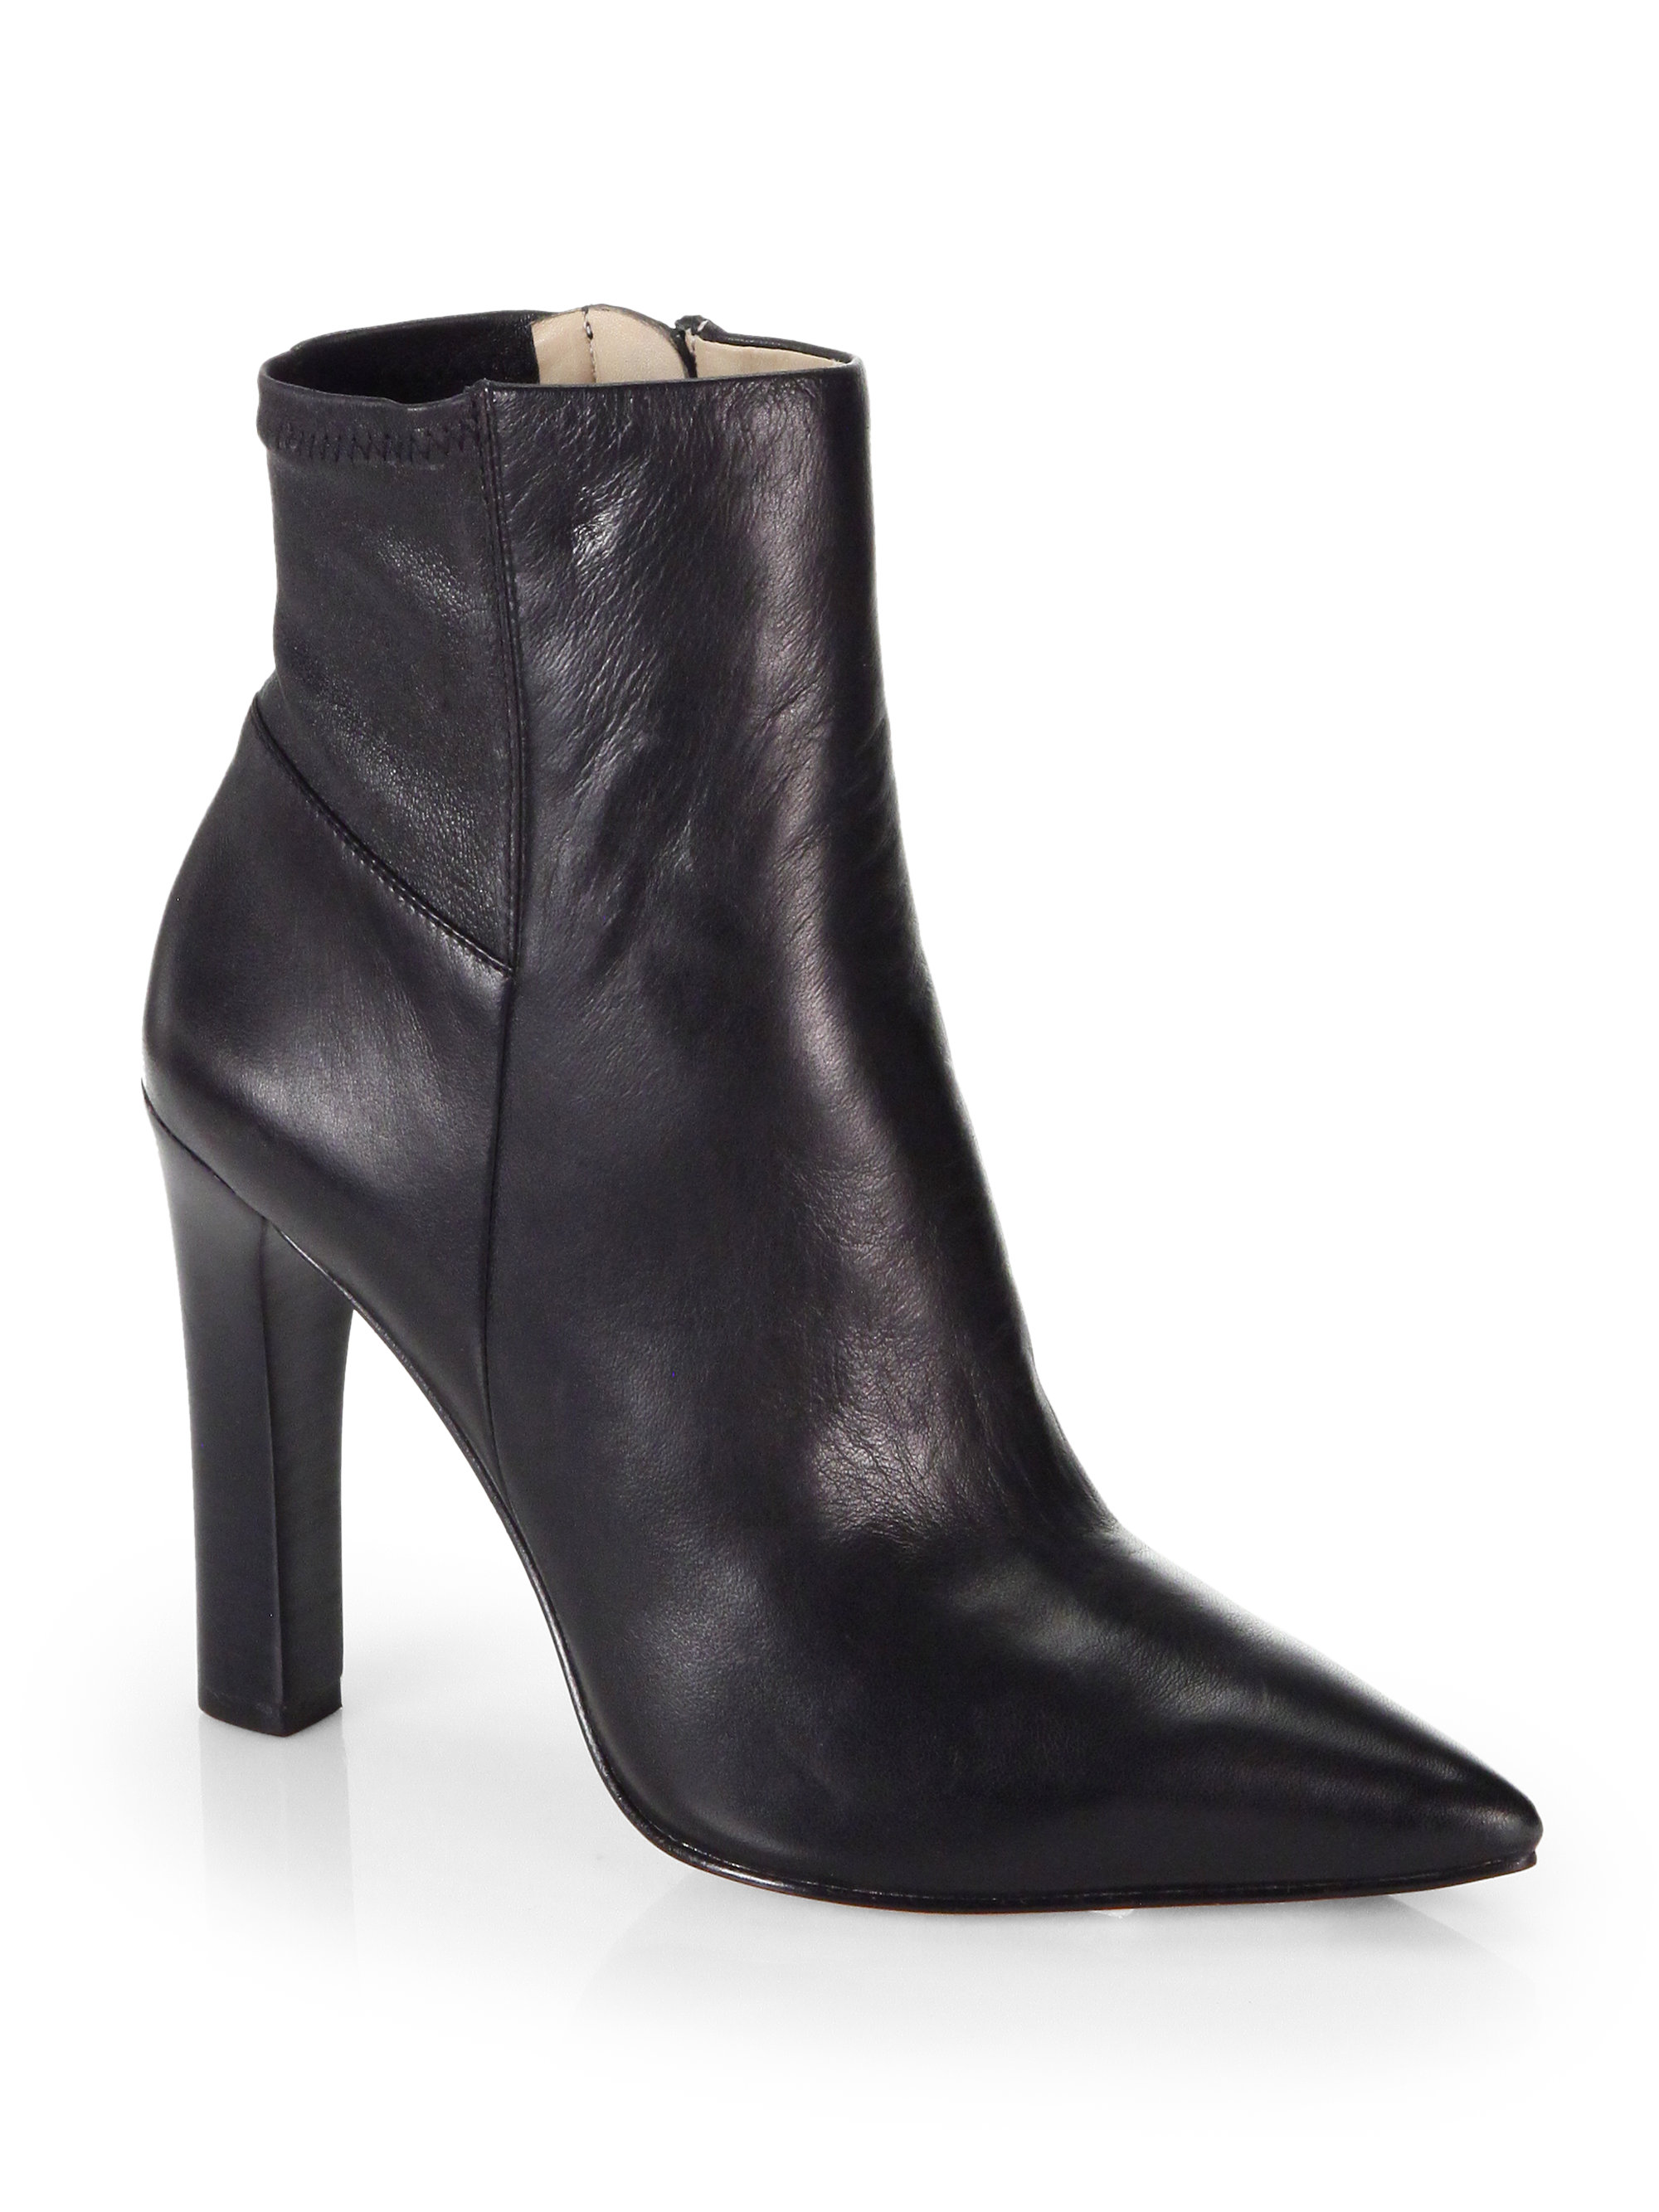 Elizabeth and james Vikki Leather Ankle Boots in Black | Lyst